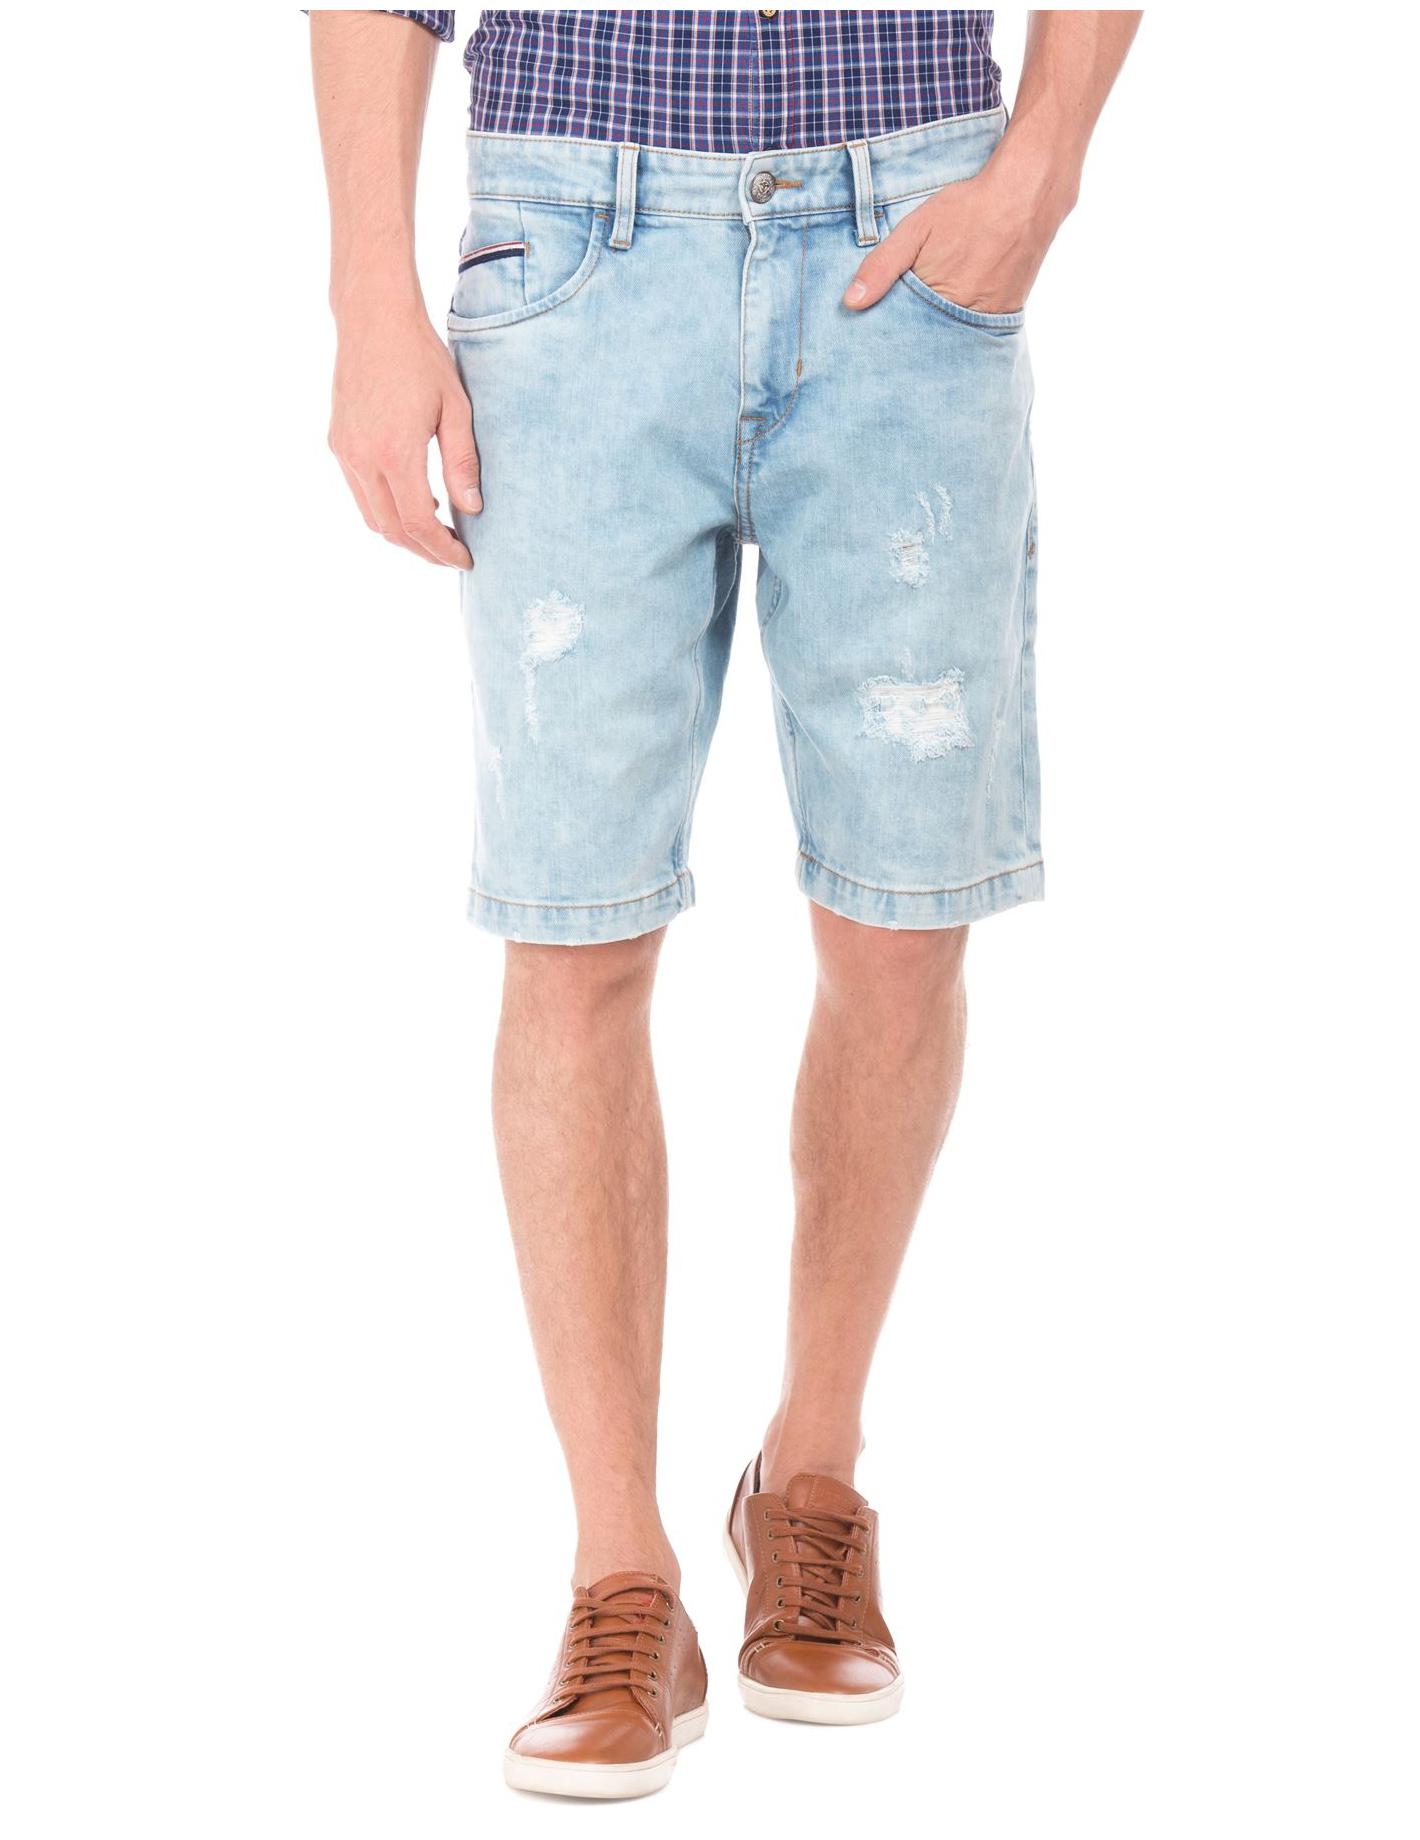 U.S. Polo Assn. Men Cotton Blend Shorts - Blue